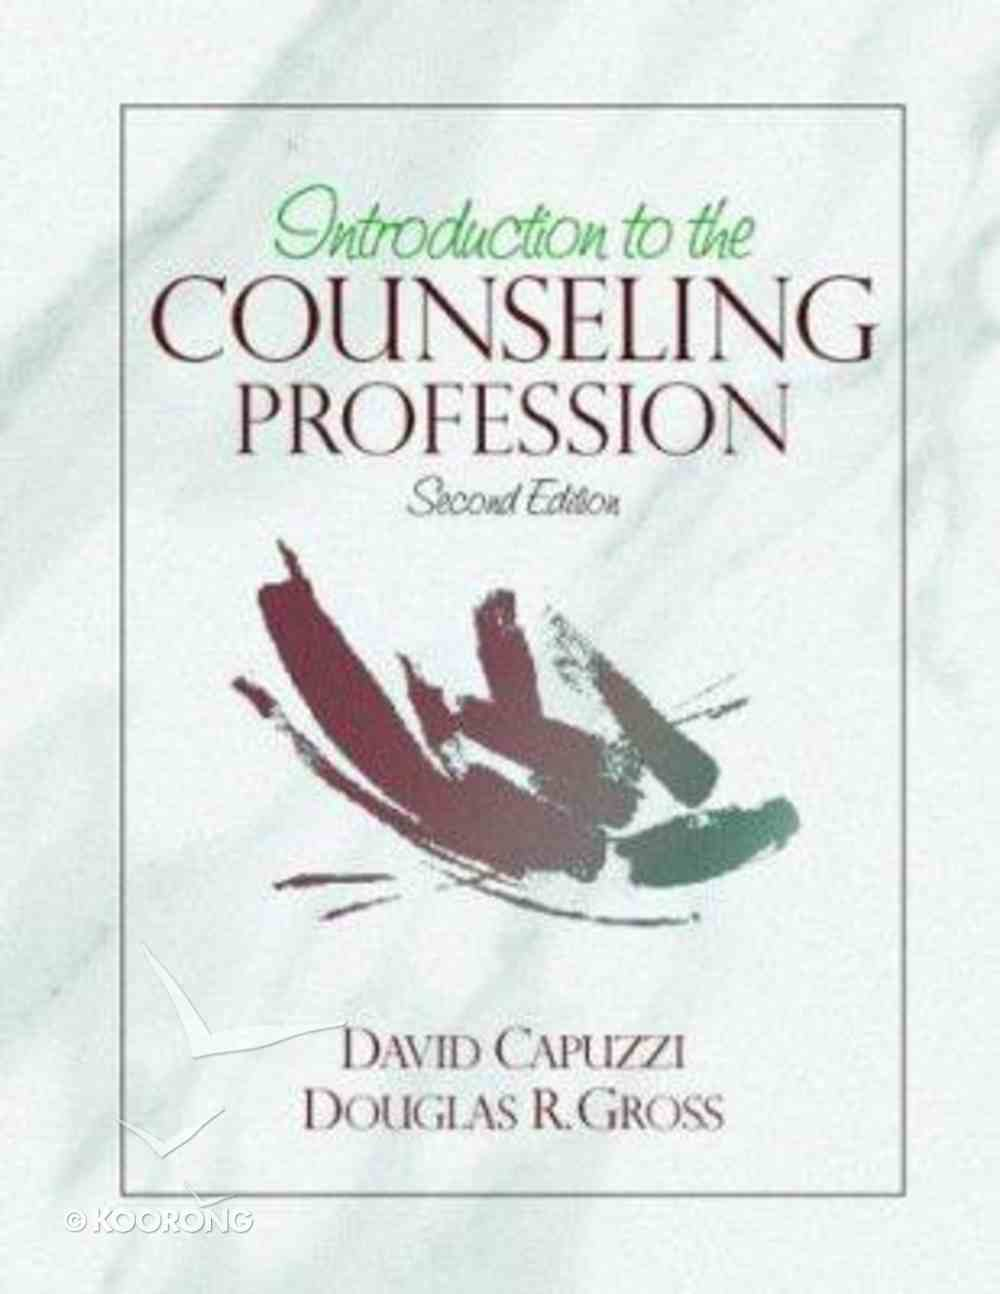 Introduction to the Counseling Profession Hardback